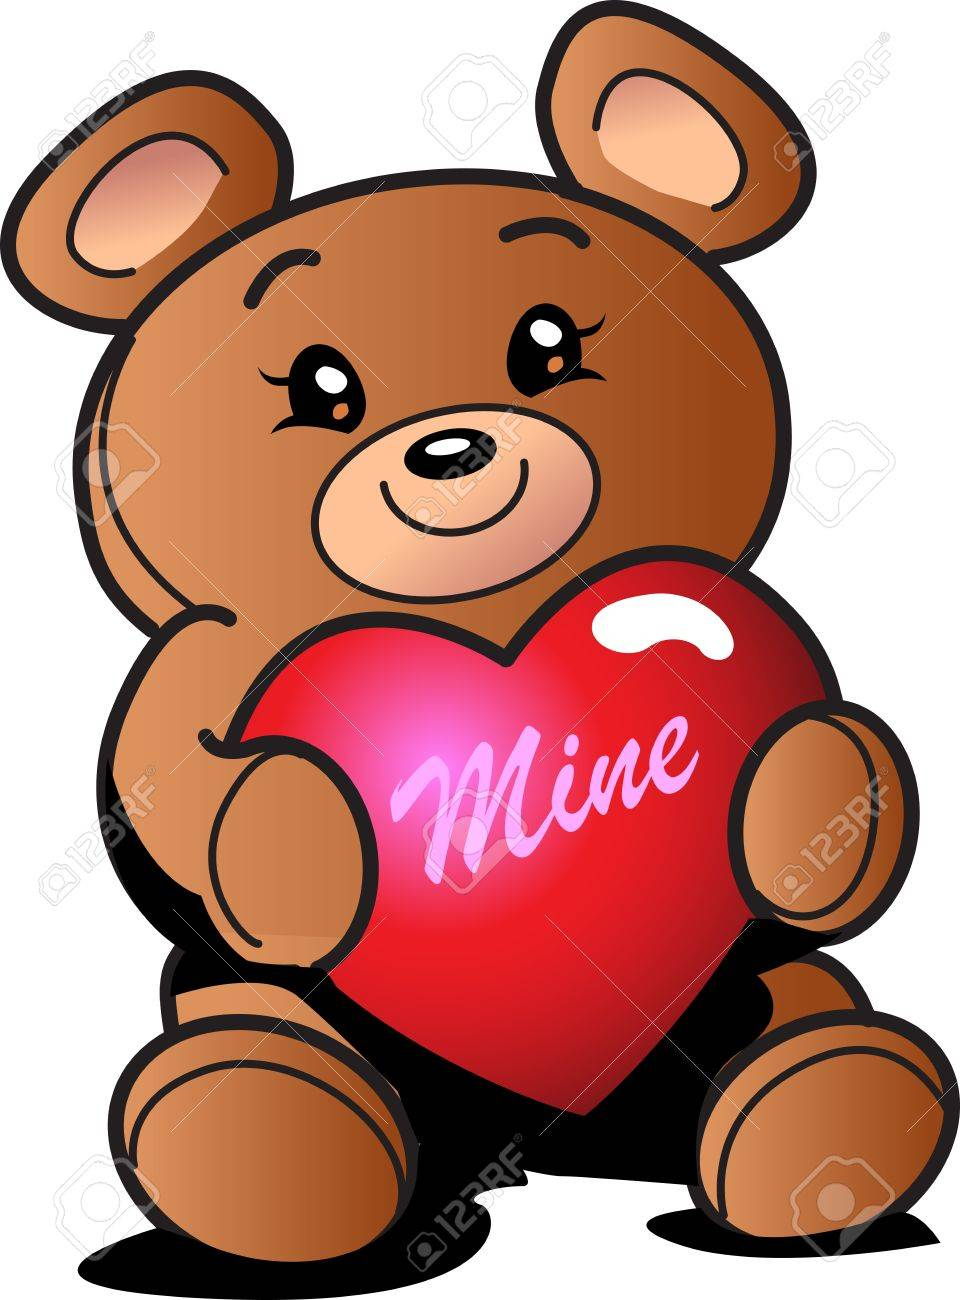 Cute Valentine's Day Teddy Bear with Heart That Says